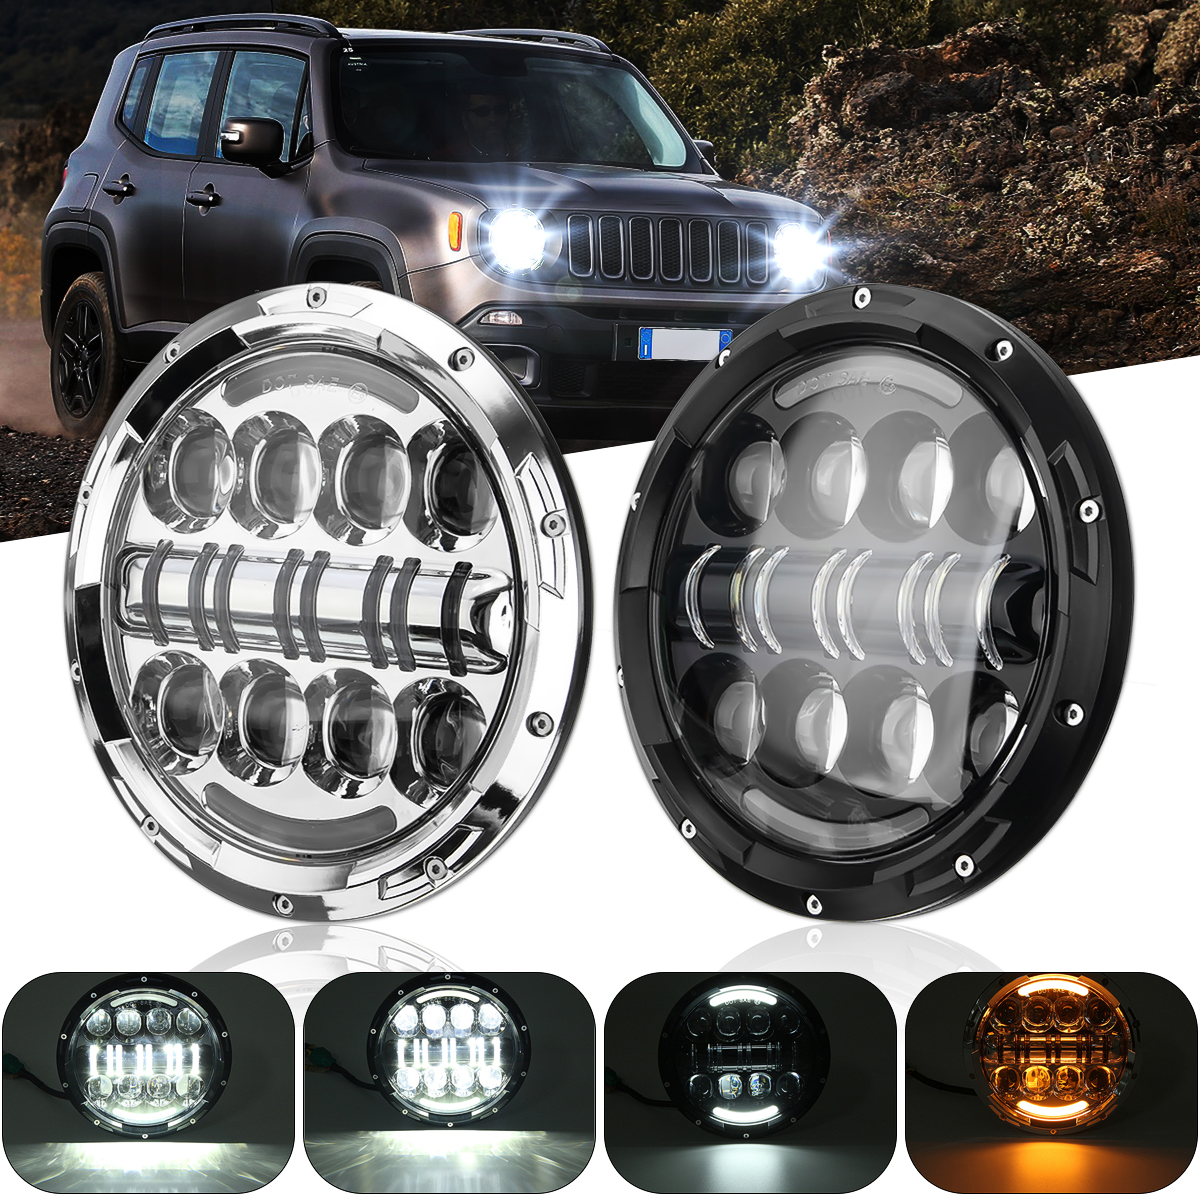 For Land Rover For Harley-Davidson Mofaner 7 Inch Motorcycle Headlight (Hi/Lo) Round 75W LED Car Headlamp For JeepFor Land Rover For Harley-Davidson Mofaner 7 Inch Motorcycle Headlight (Hi/Lo) Round 75W LED Car Headlamp For Jeep